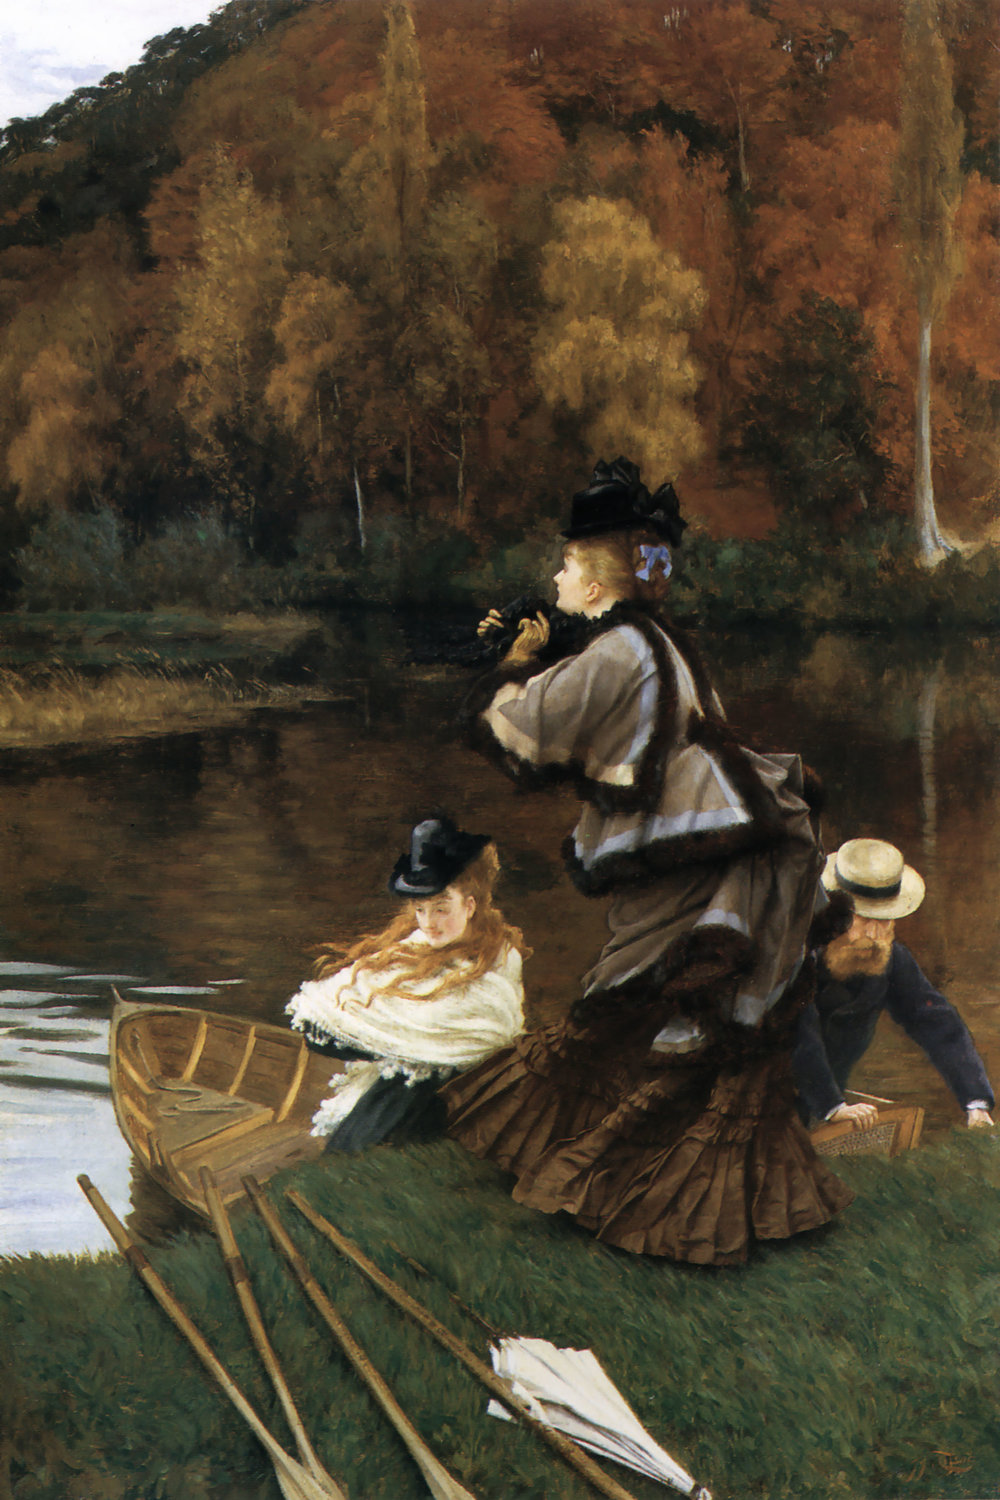 James Tissot, Autumn on the Thames